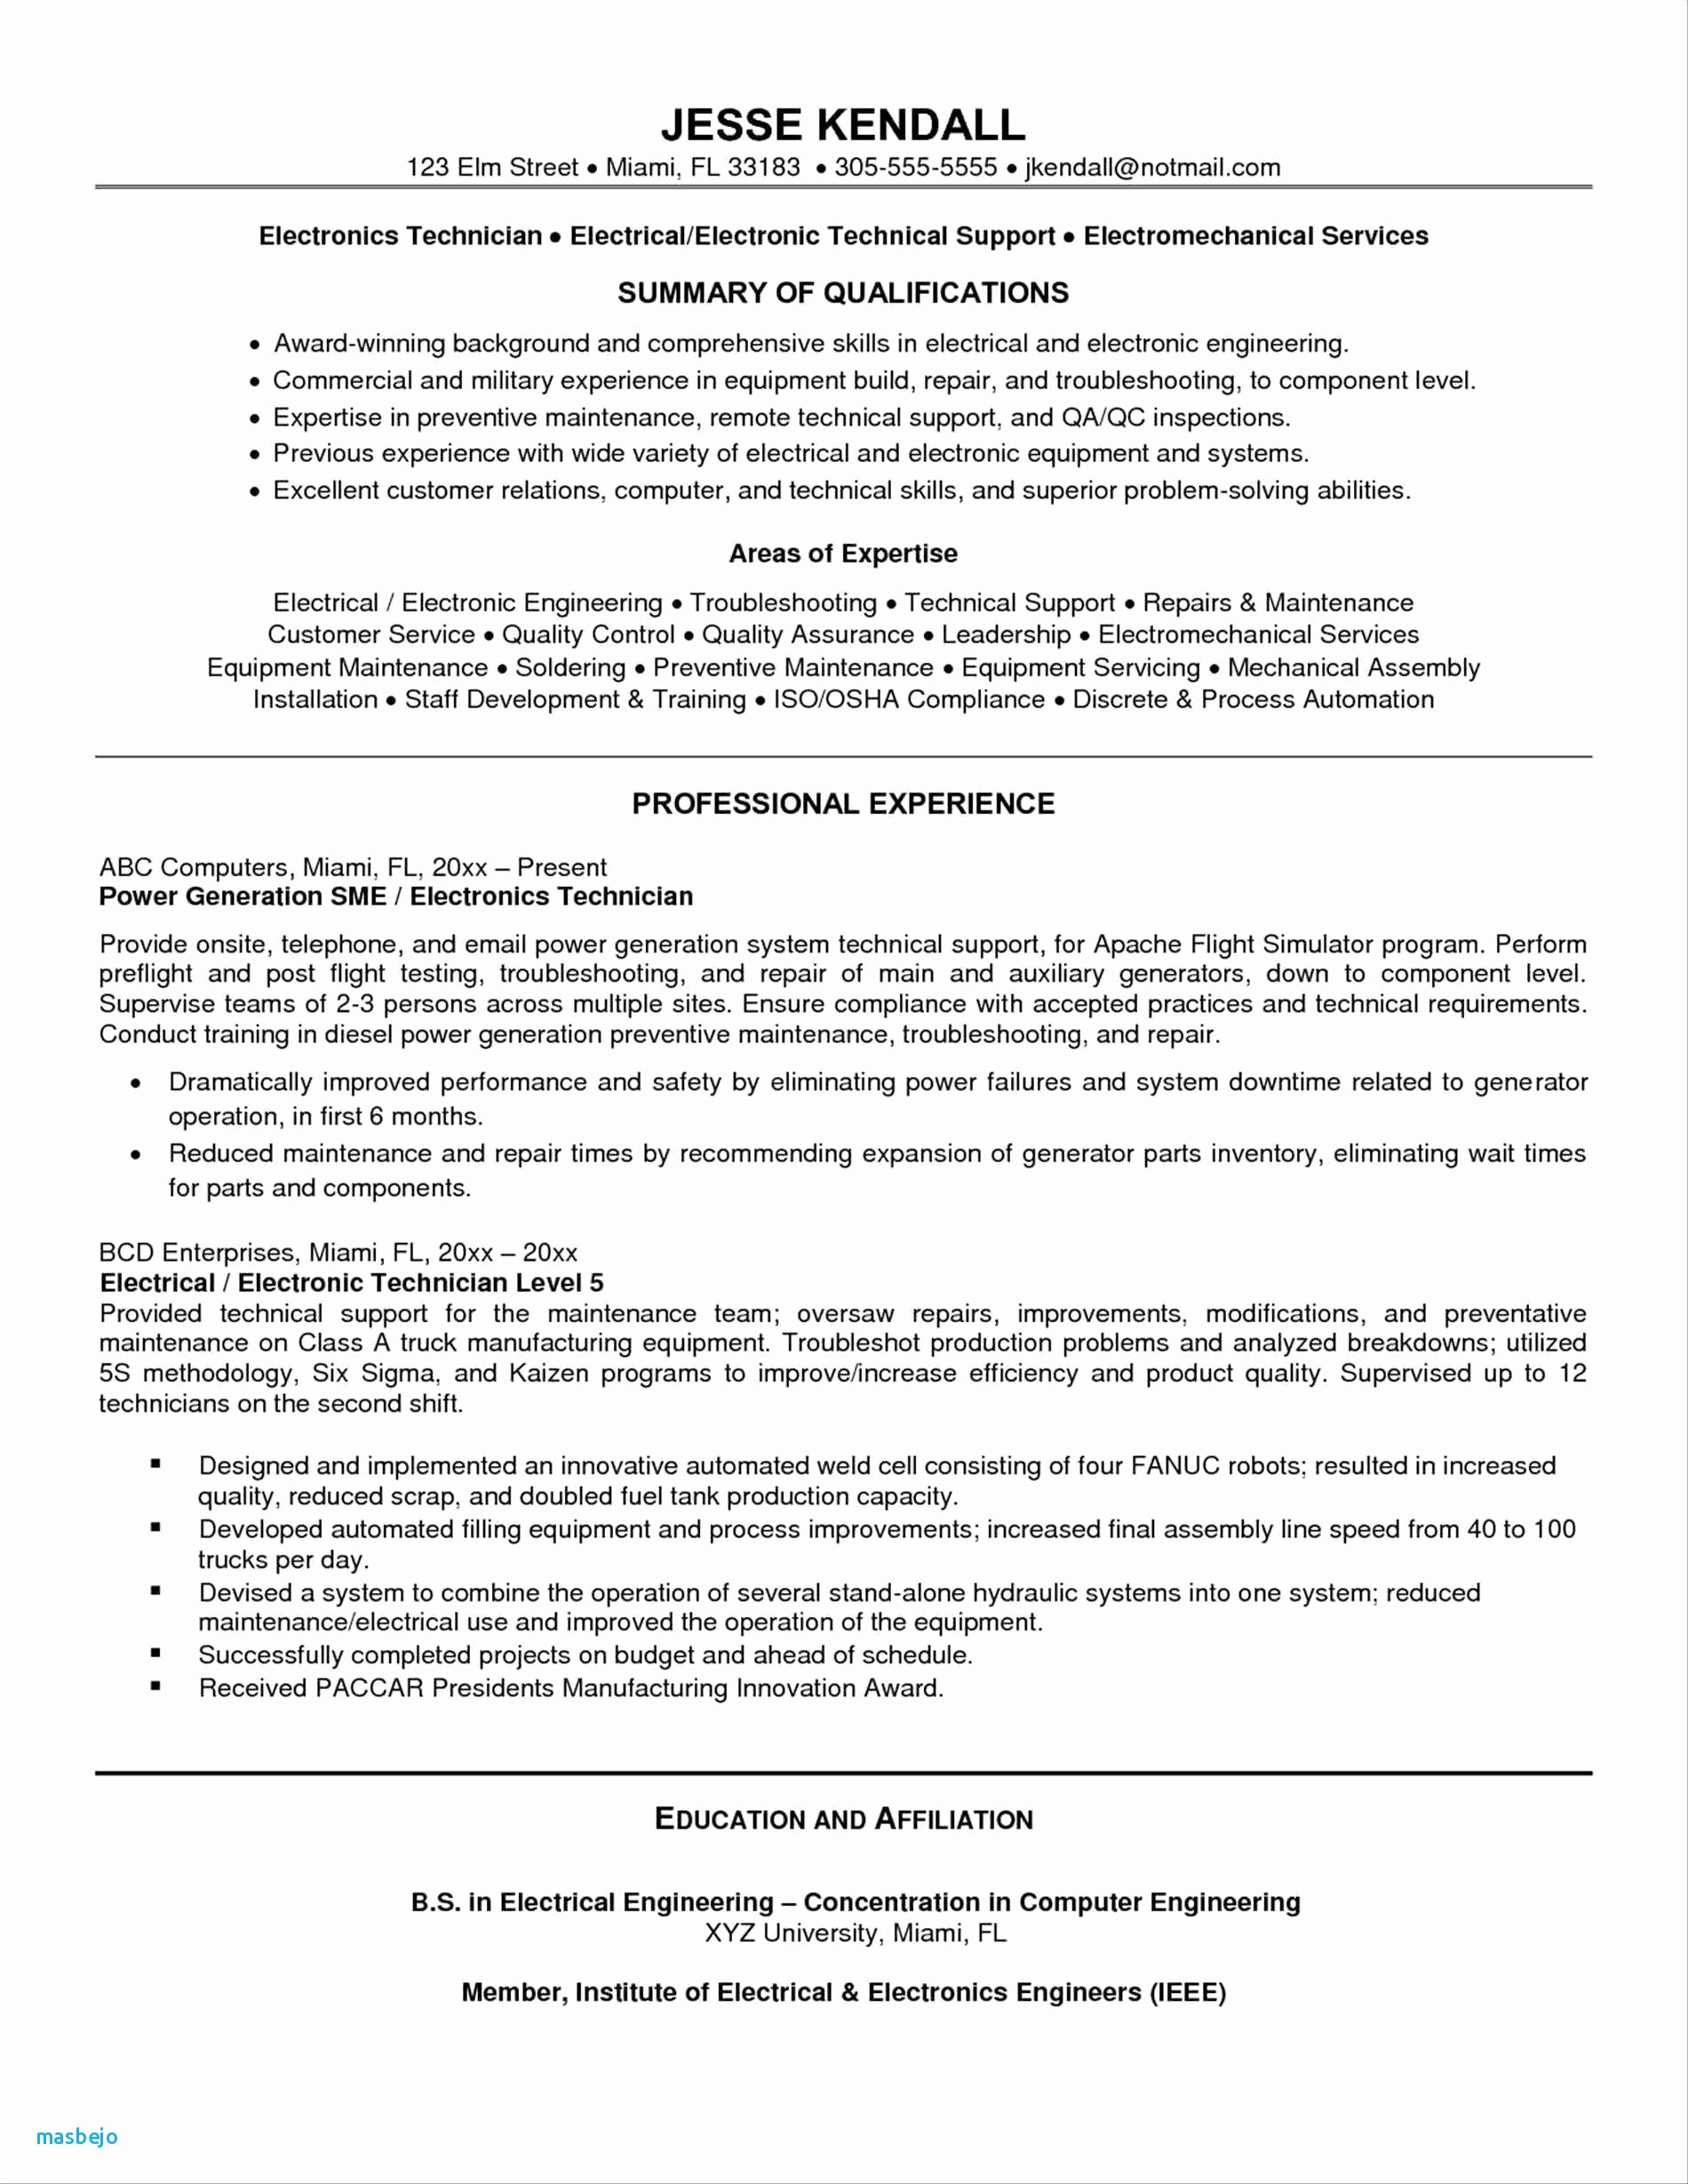 computer engineering resume template Collection-puter Engineering Resume Awesome New Tech Resume Best Great Resume Examples Awesome Fresh Resume 0d 8-q